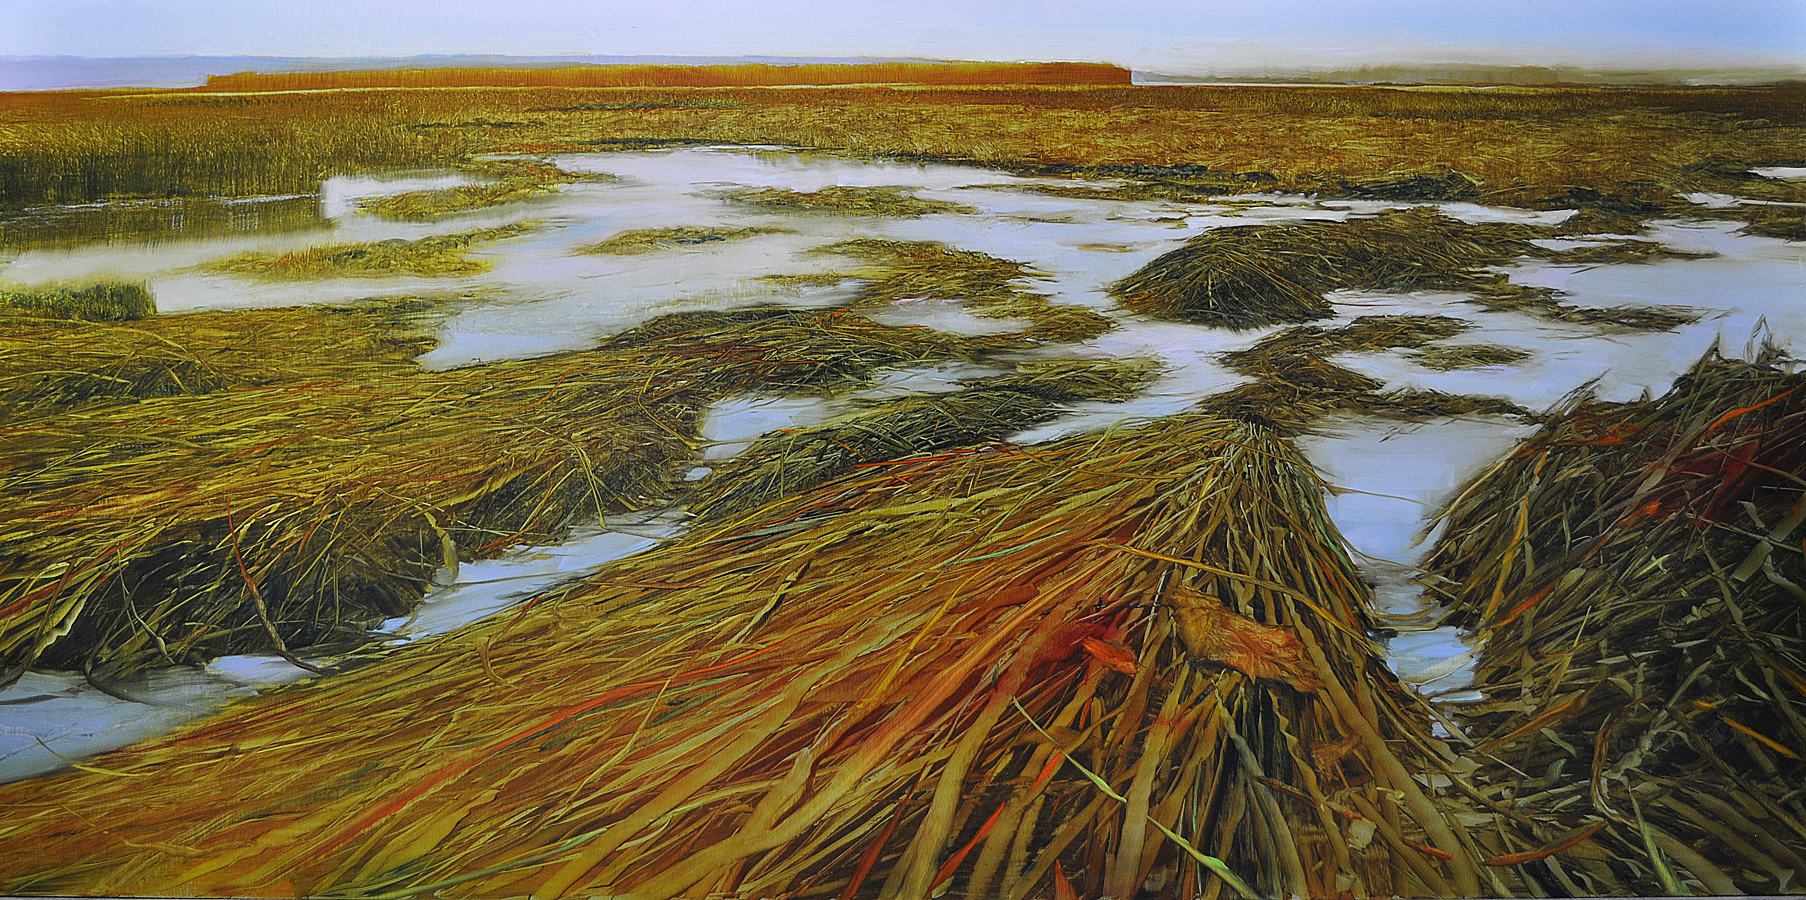 Dunlop_Shoreline Marsh Dunlop_Labyrinth_ oil on brushed silver anodized aluminum_24x48.jpg